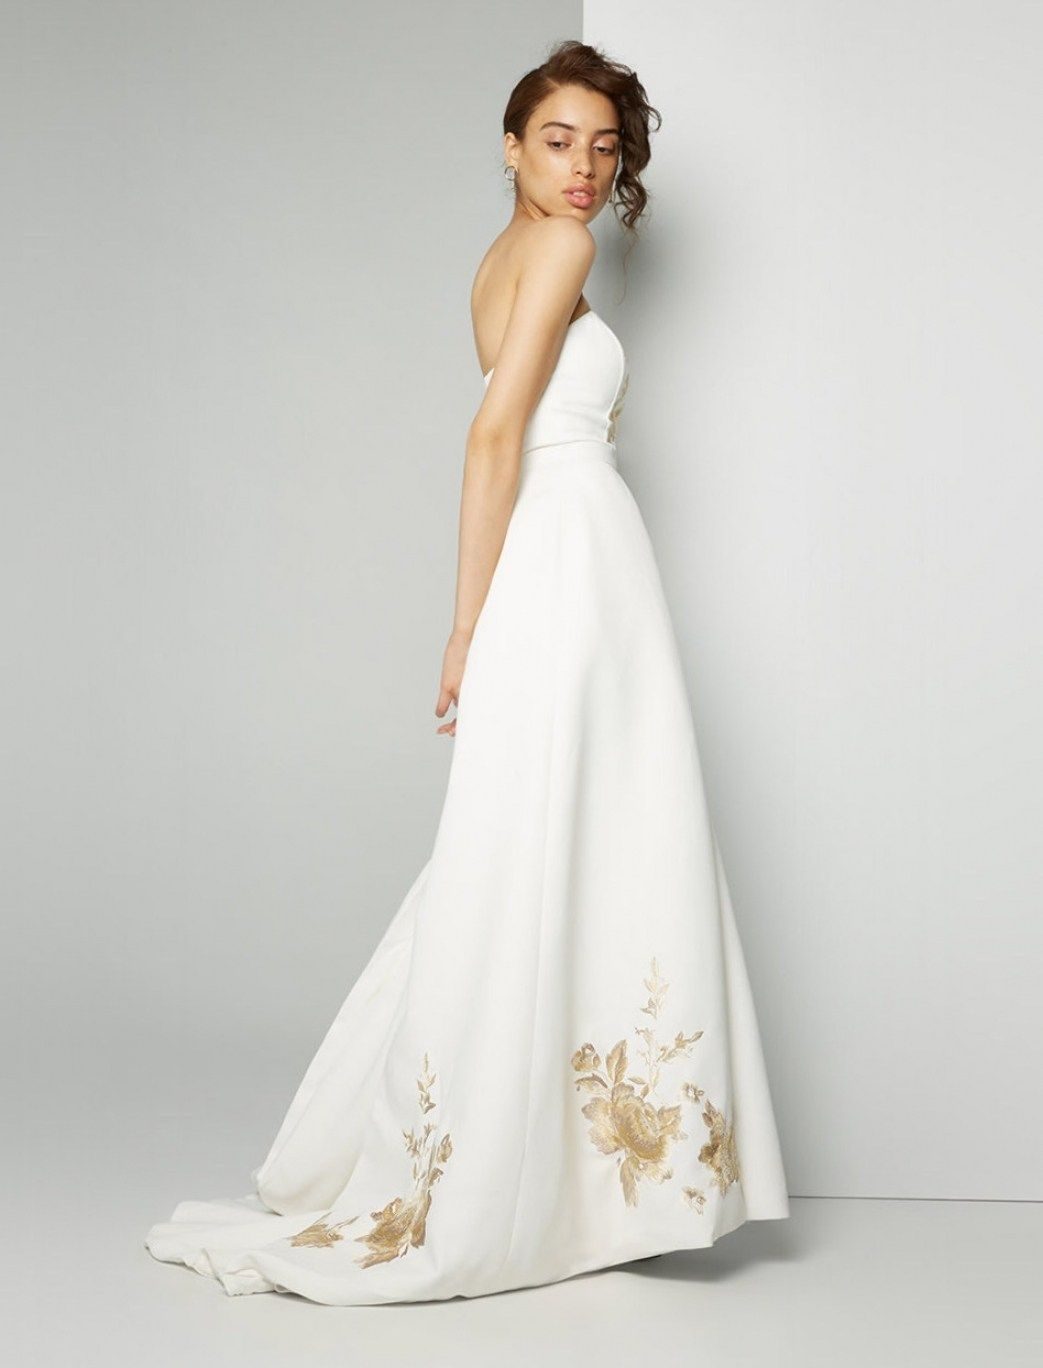 30 Beautiful White Wedding Dress With Black Embroidery | White ...